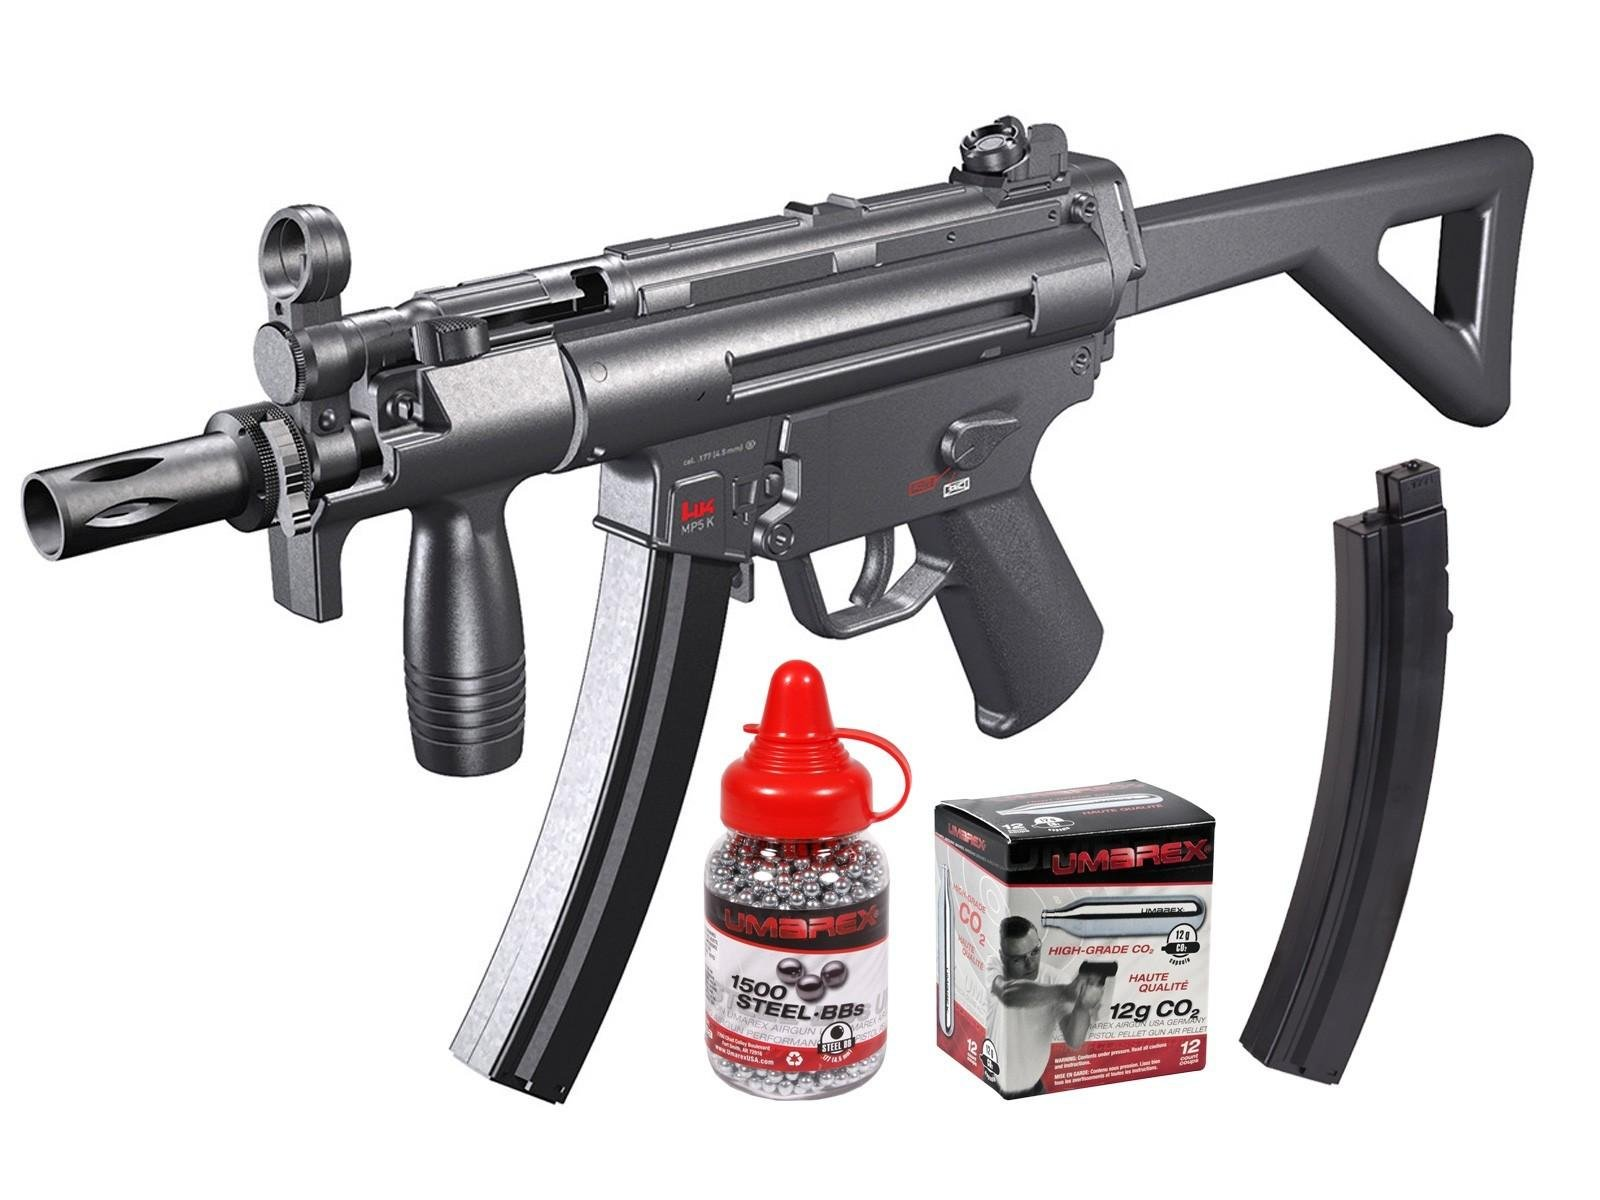 MP5 Silver Storm (H&K MP5-PDW) air rifle